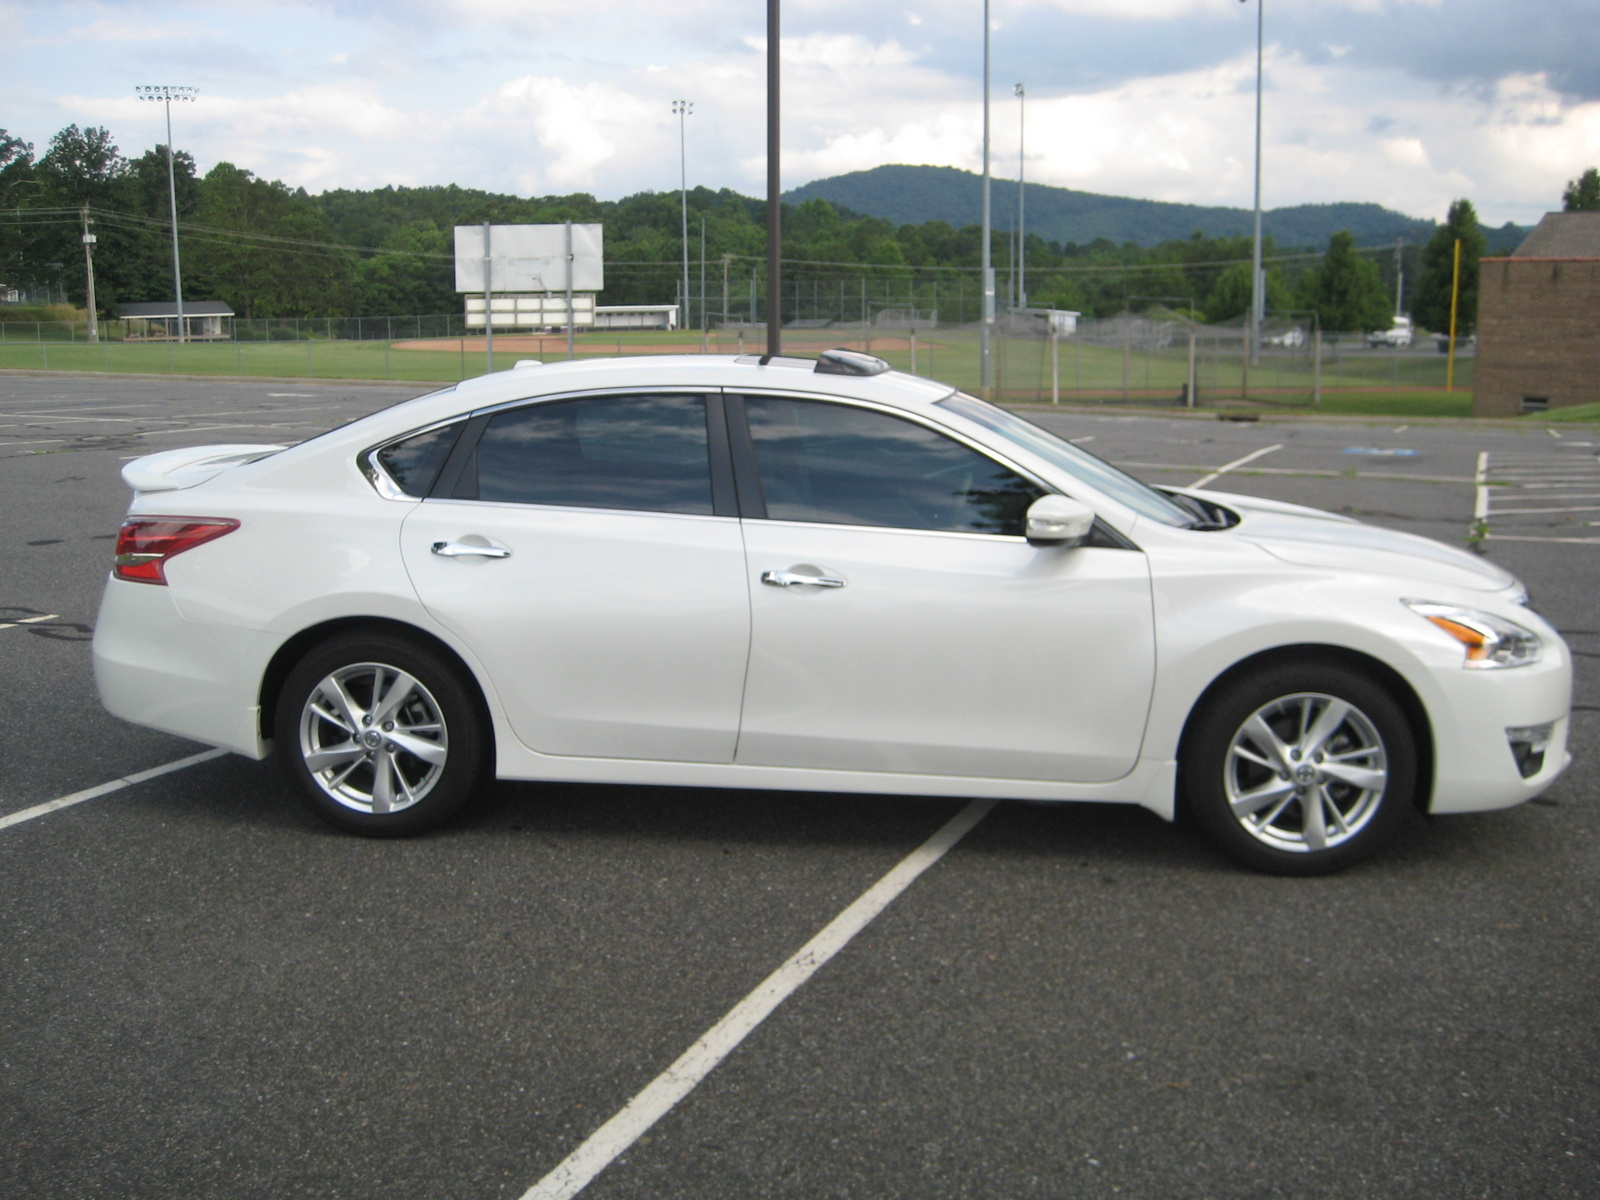 1996 Toyota Camry Parts 2013 Nissan Altima - Pictures - CarGurus